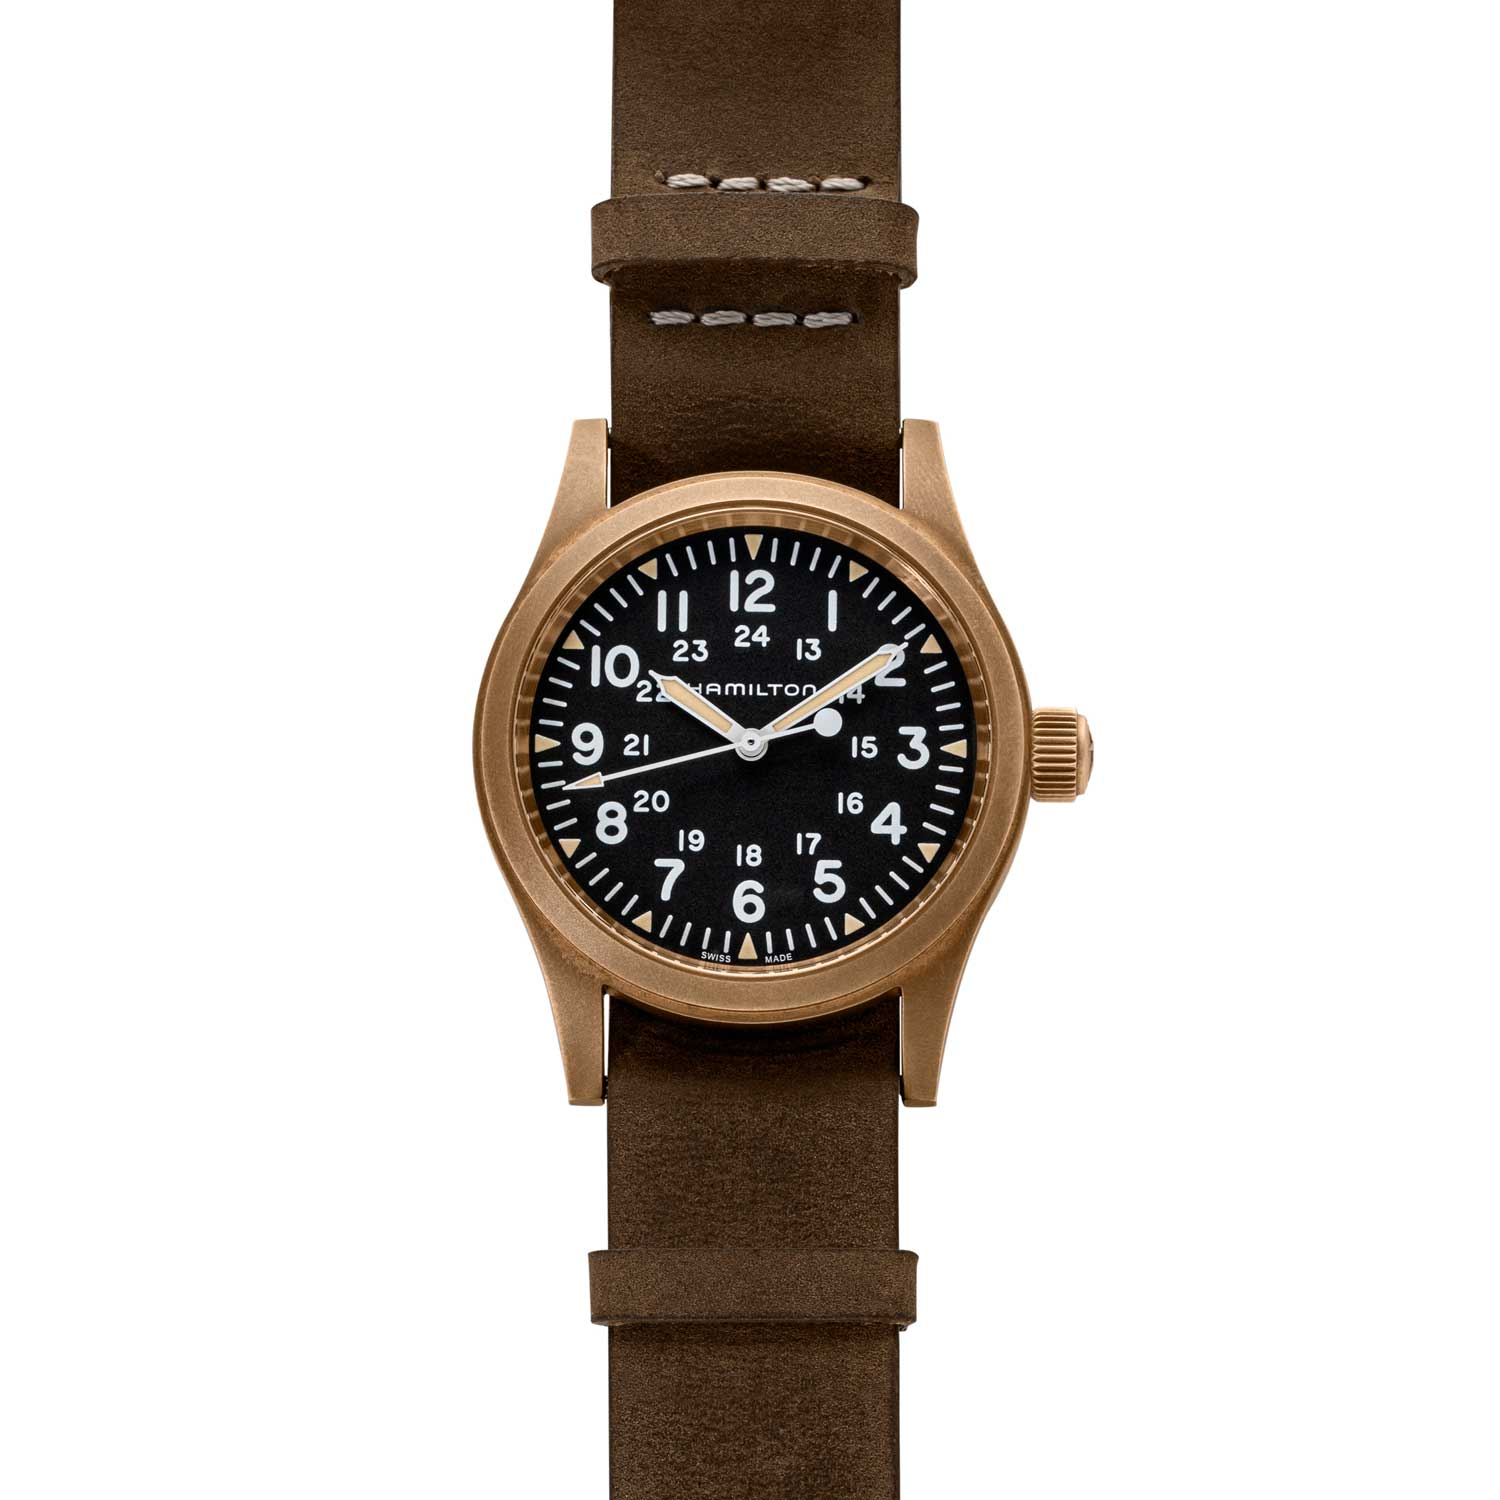 The Khaki Field Mechanical 38mm has a black dial with luminous triangles on the hour, both 12- and 24-hour time scales, and hash marks for the minutes. (©Revolution)